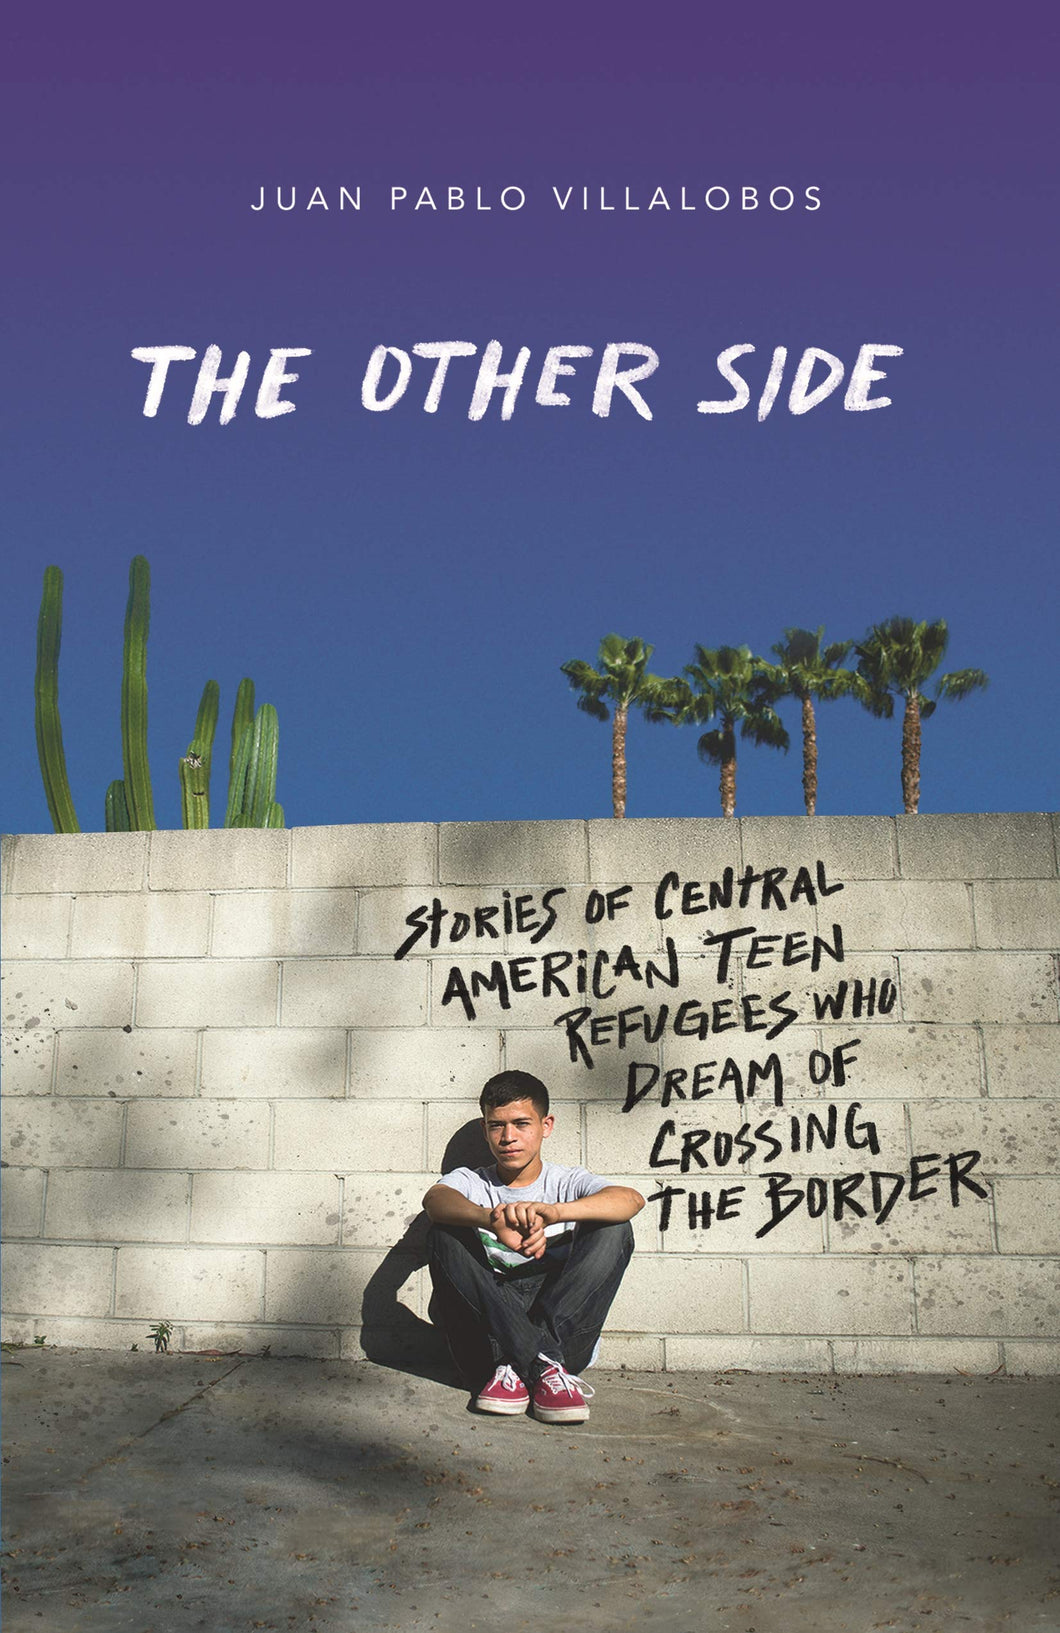 The Other Side: Stories of Central American Teen Refugees who Dream of Crossing the Border by Juan Pablo Villalobos